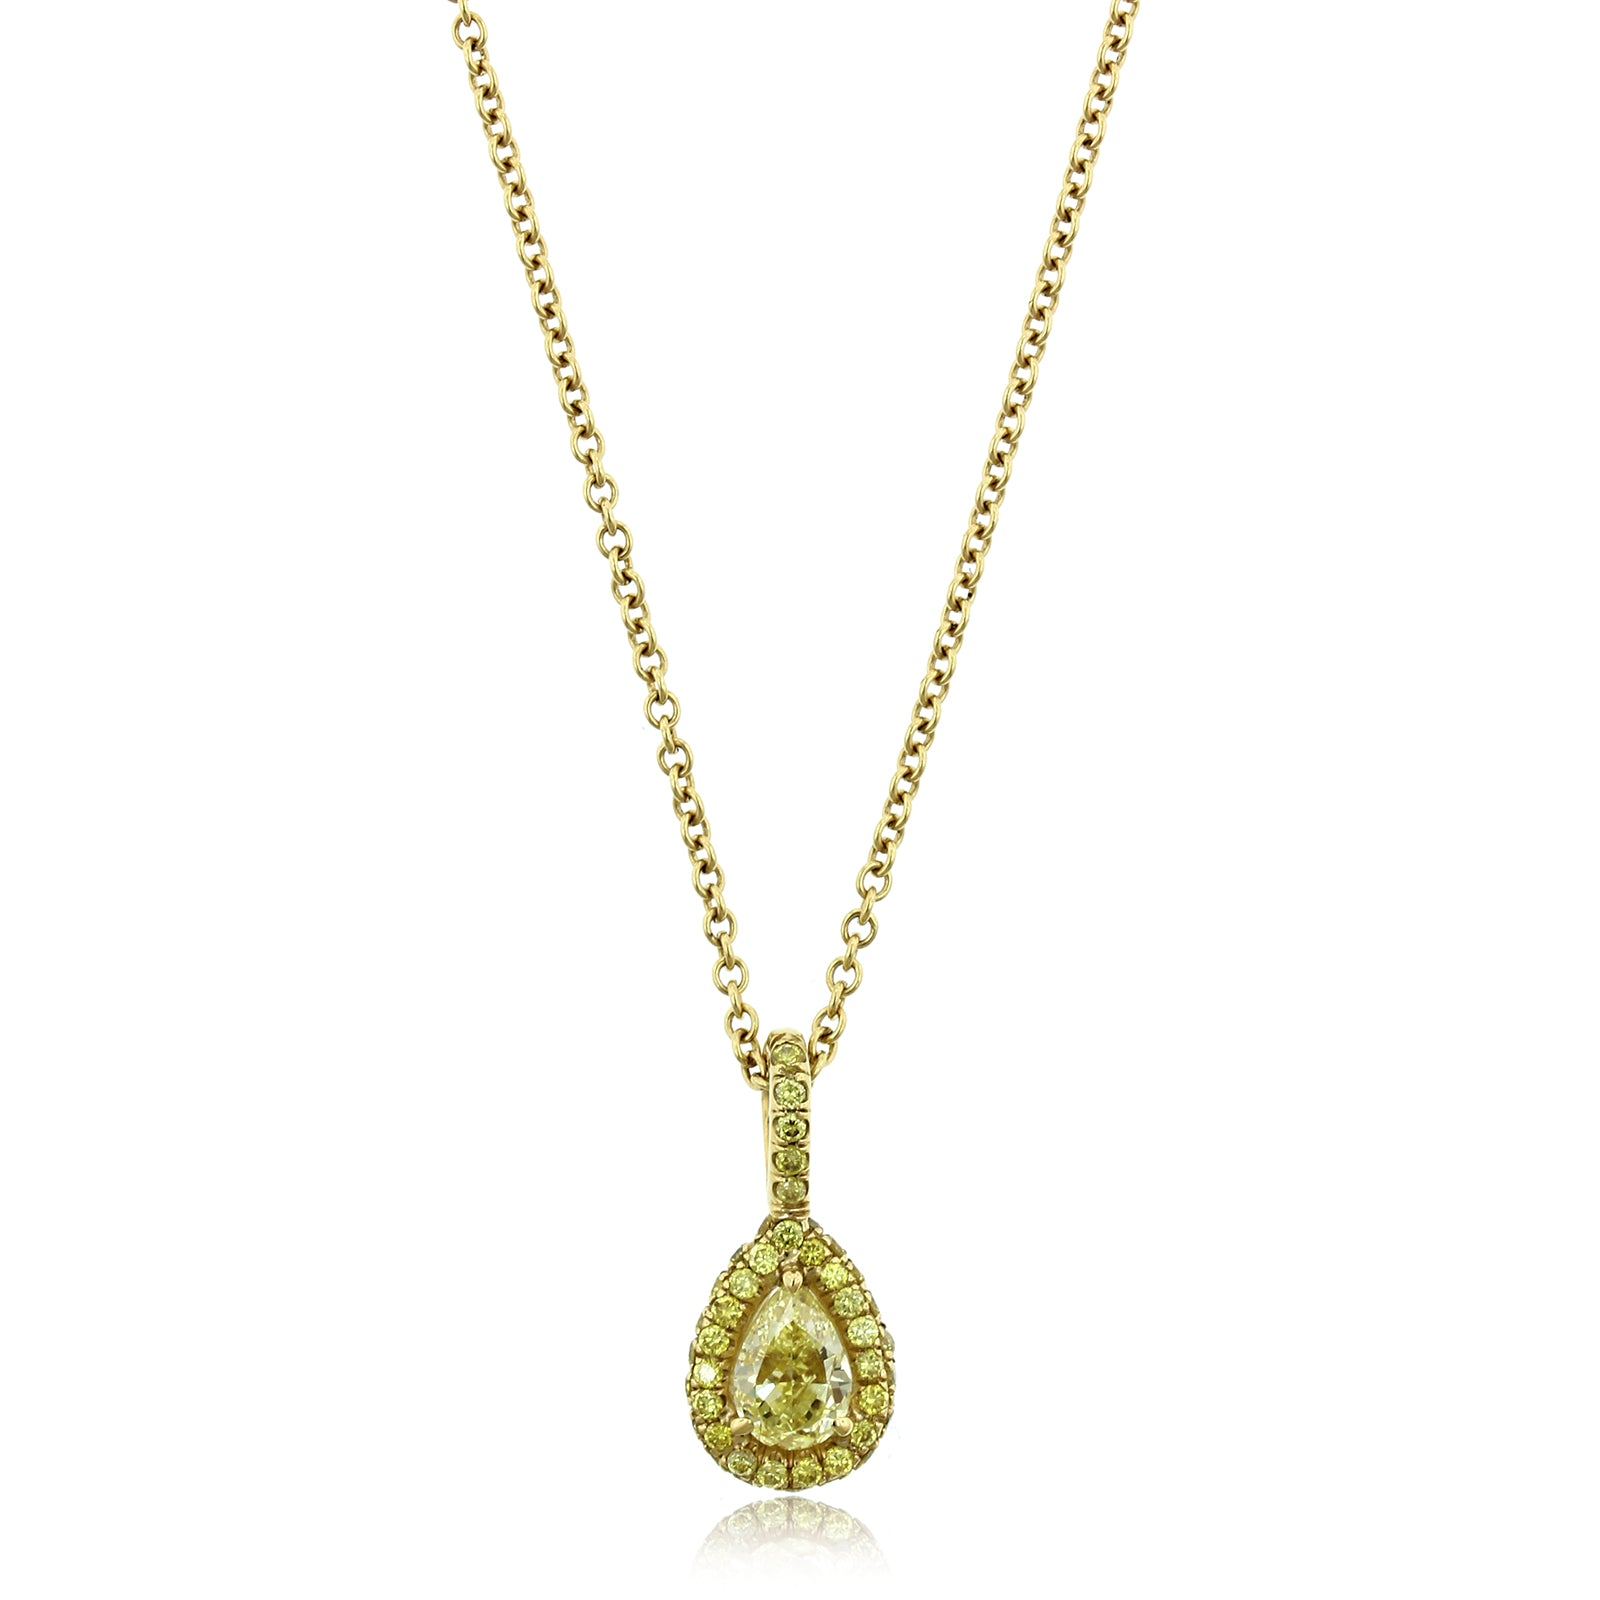 18K Yellow Gold Pear Shaped Yellow Diamond Pendant